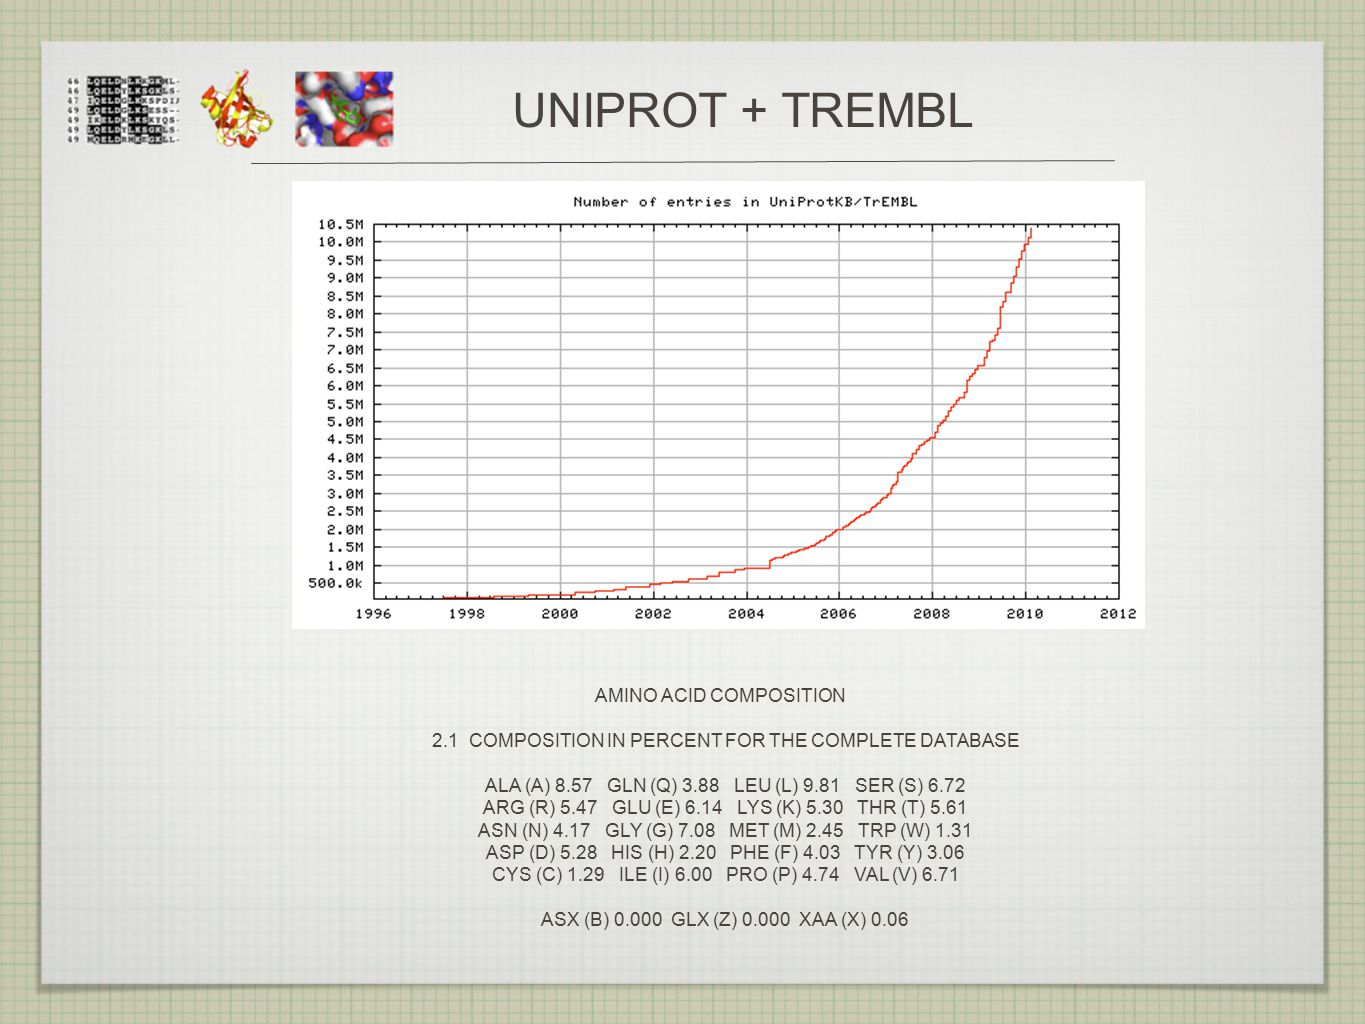 UNIPROT + TREMBL AMINO ACID COMPOSITION